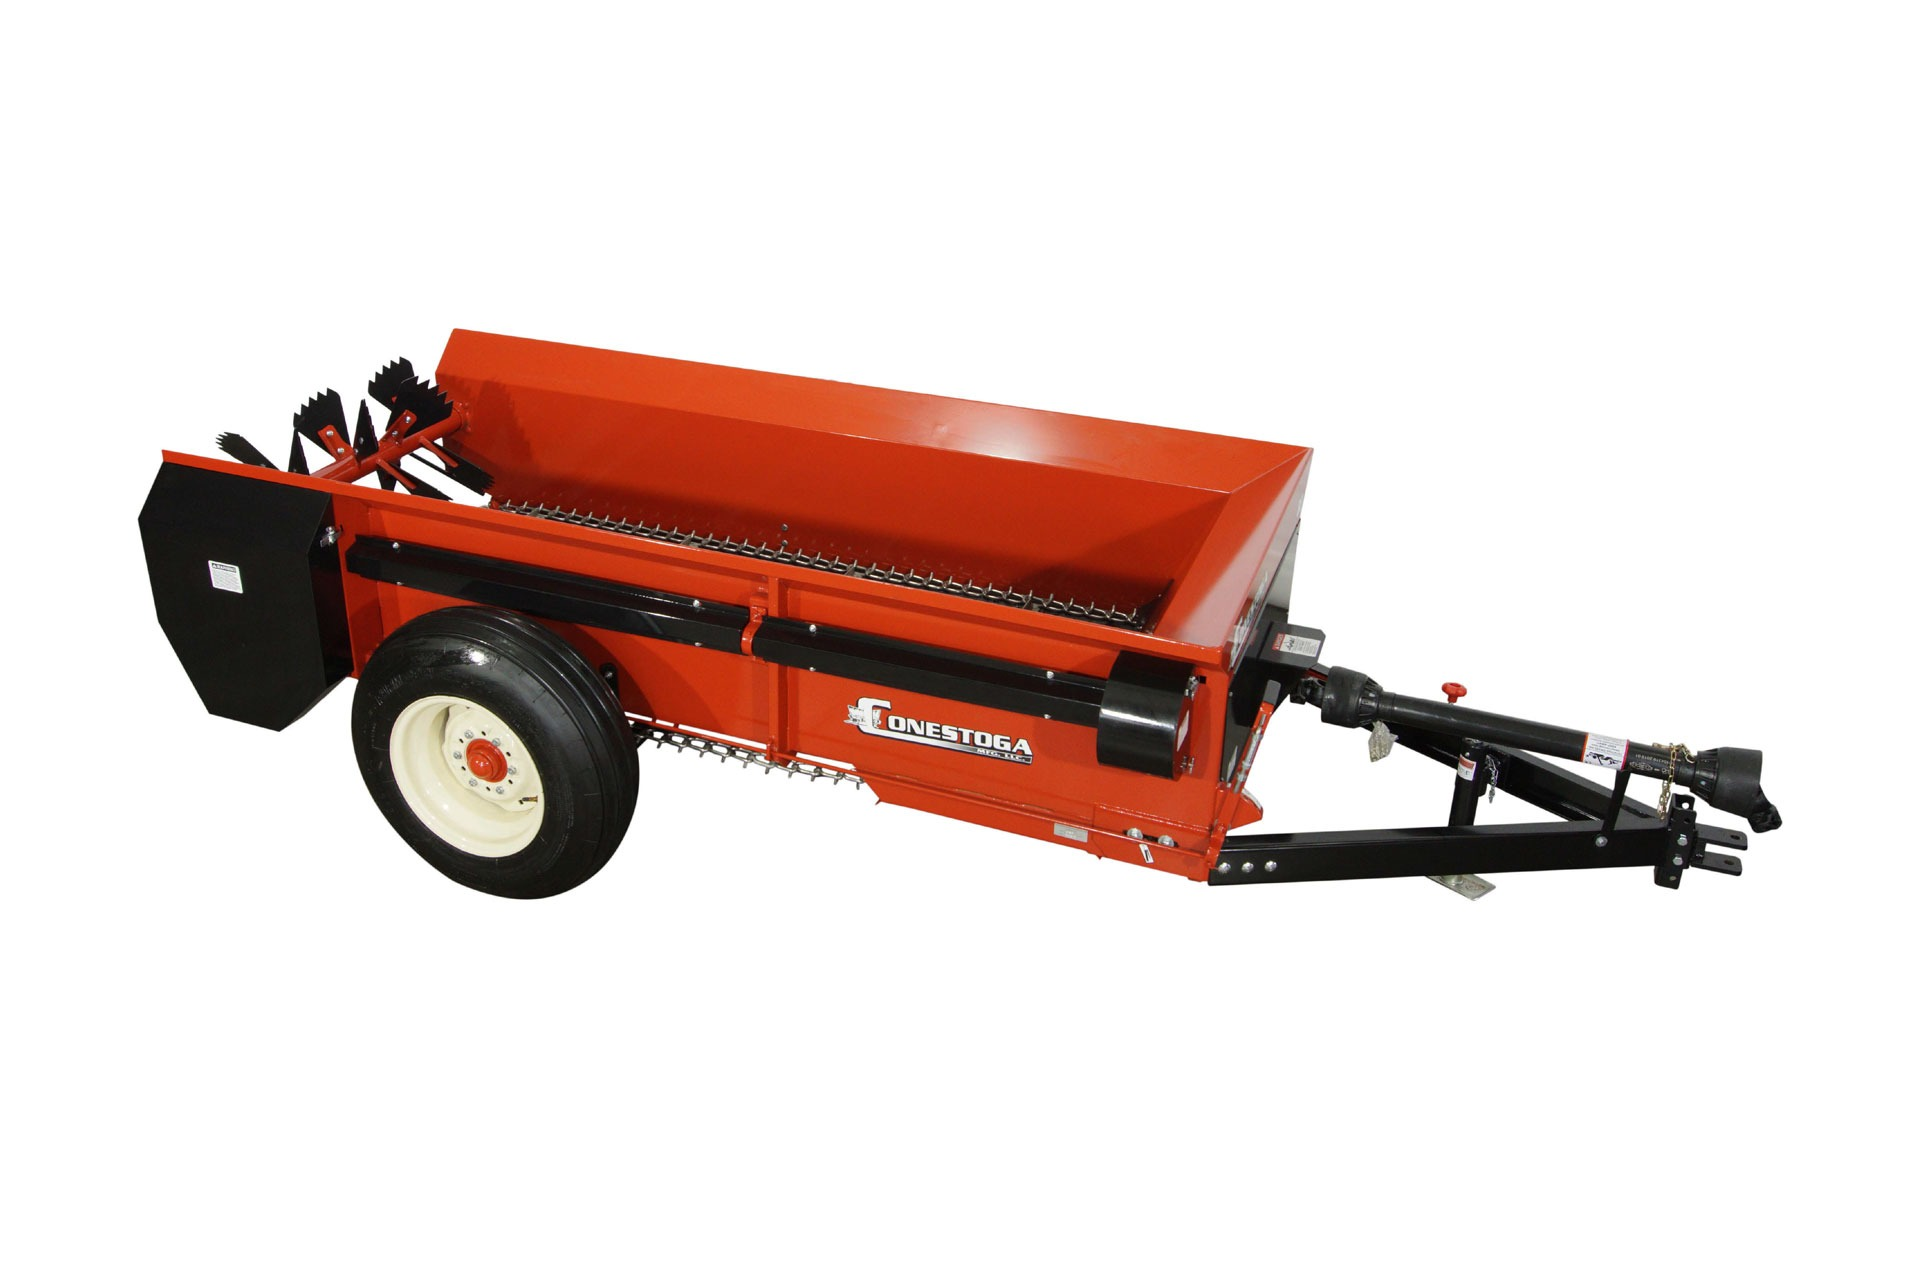 PTO tow behind manure spreader from conestoga manure spreaders, shop image.